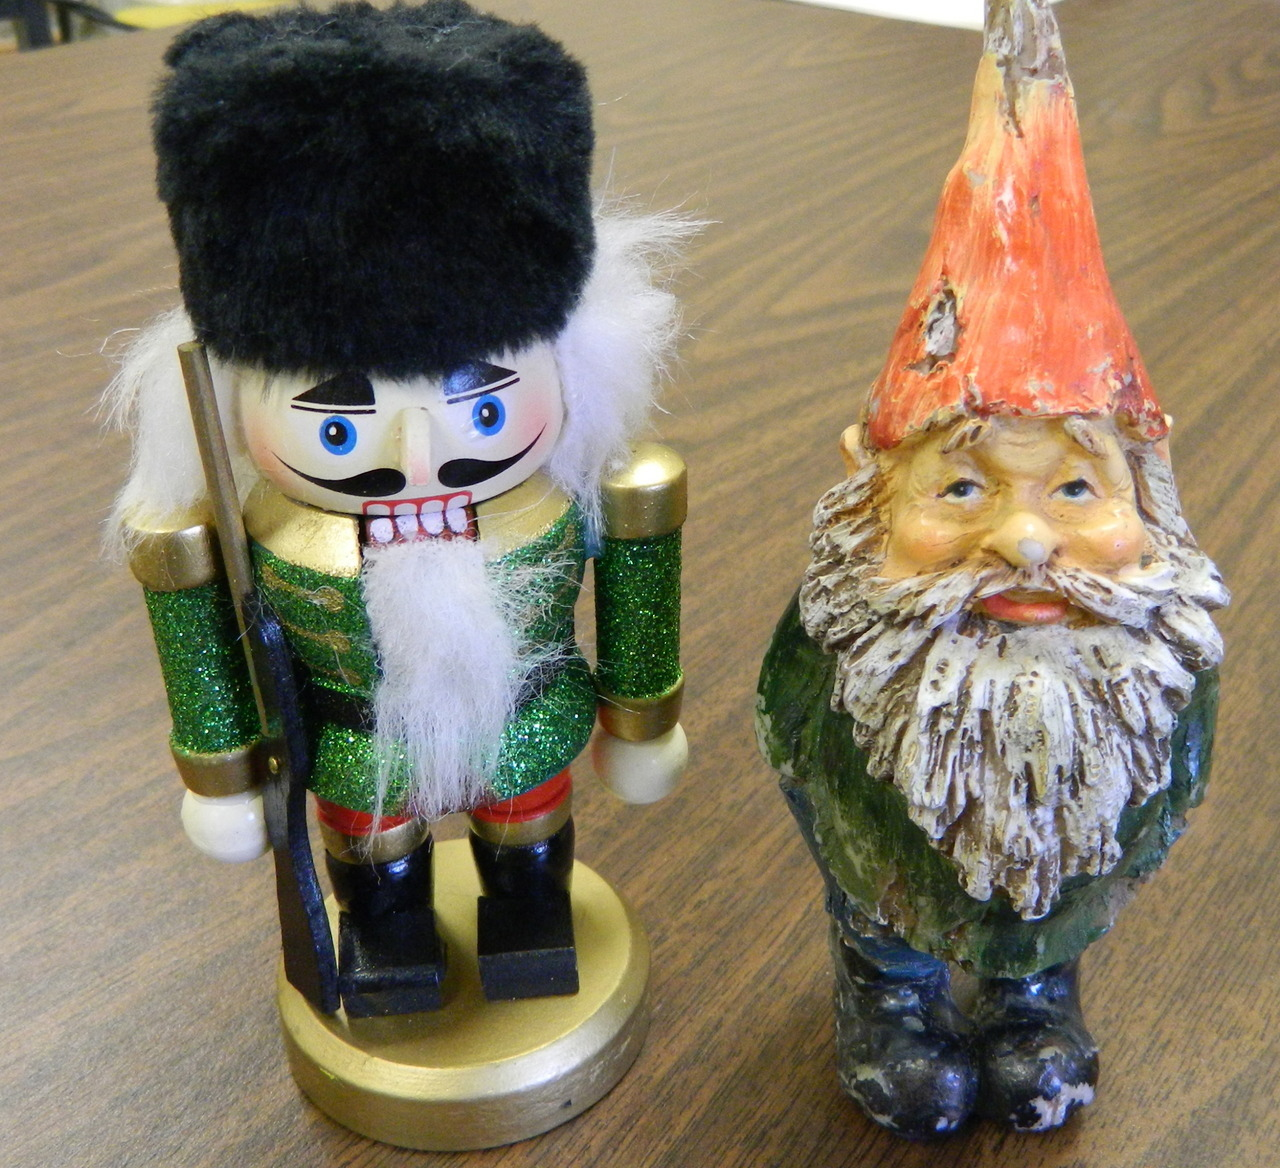 Gnomey has a seasonal new friend.